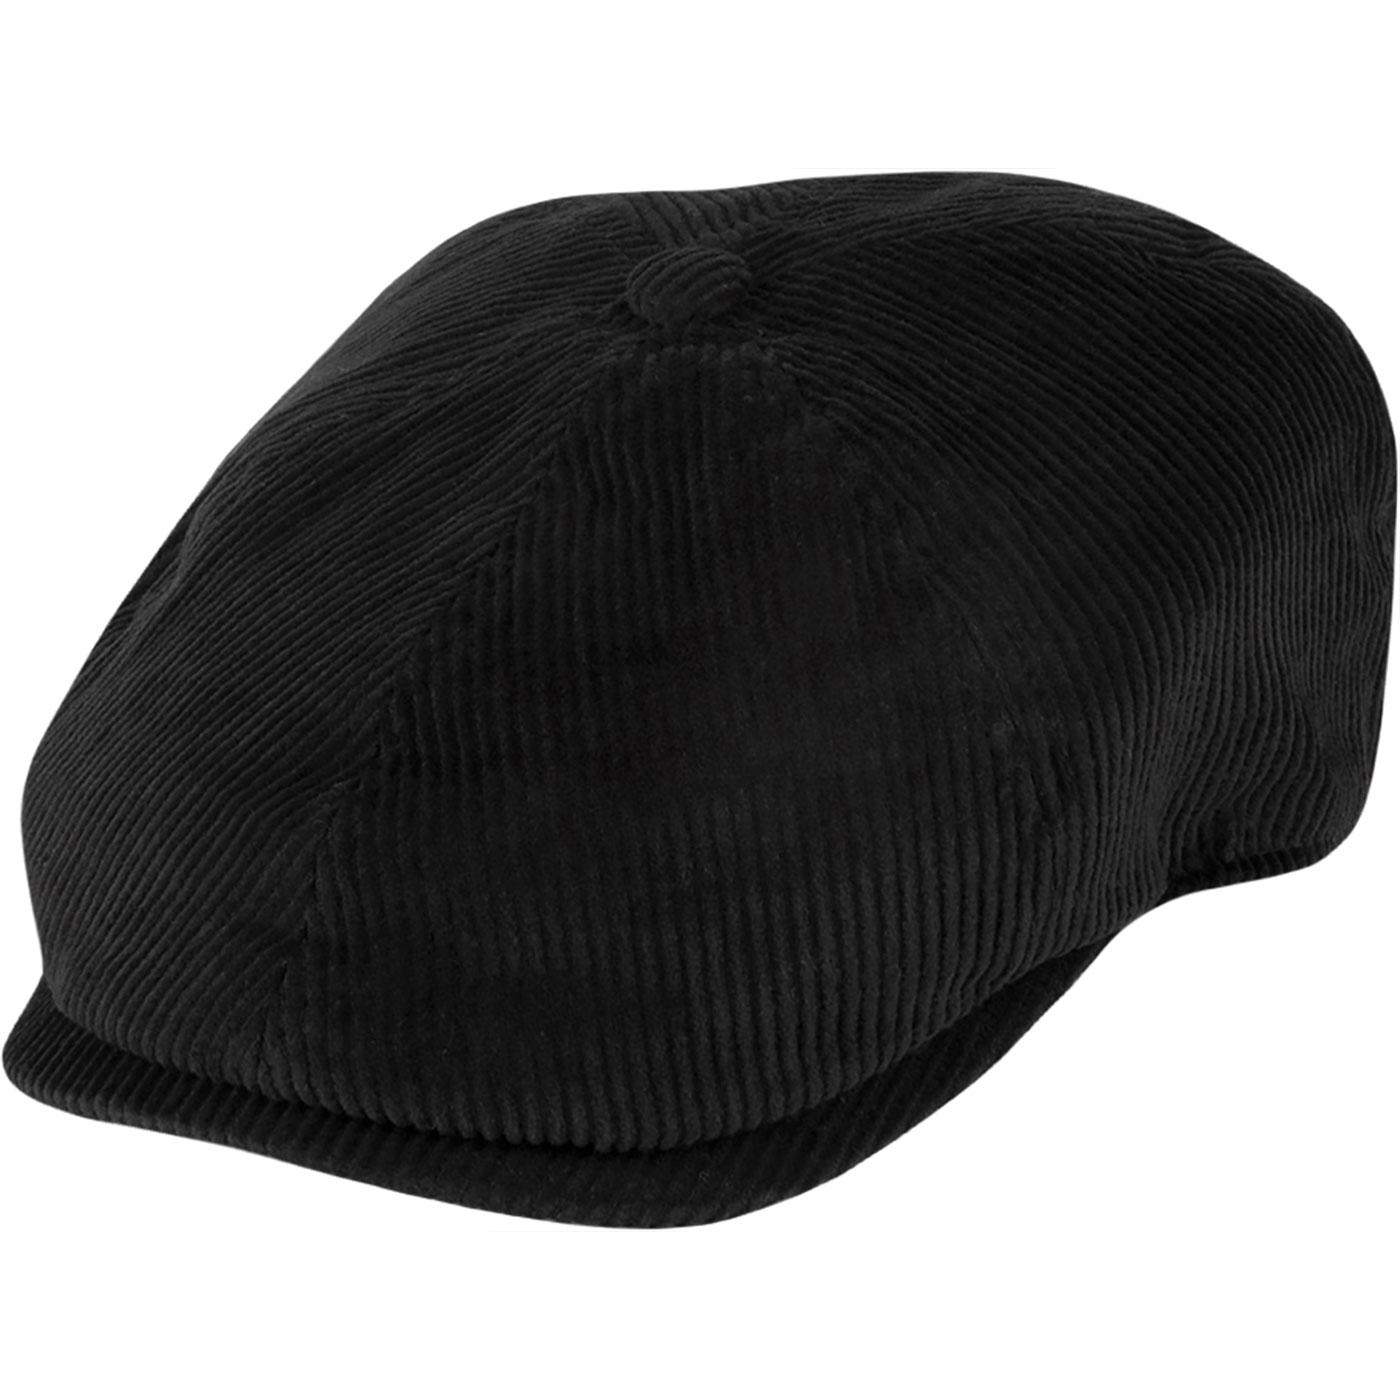 Hudson FAILSWORTH Retro Cord Spitfire Cap - BLACK